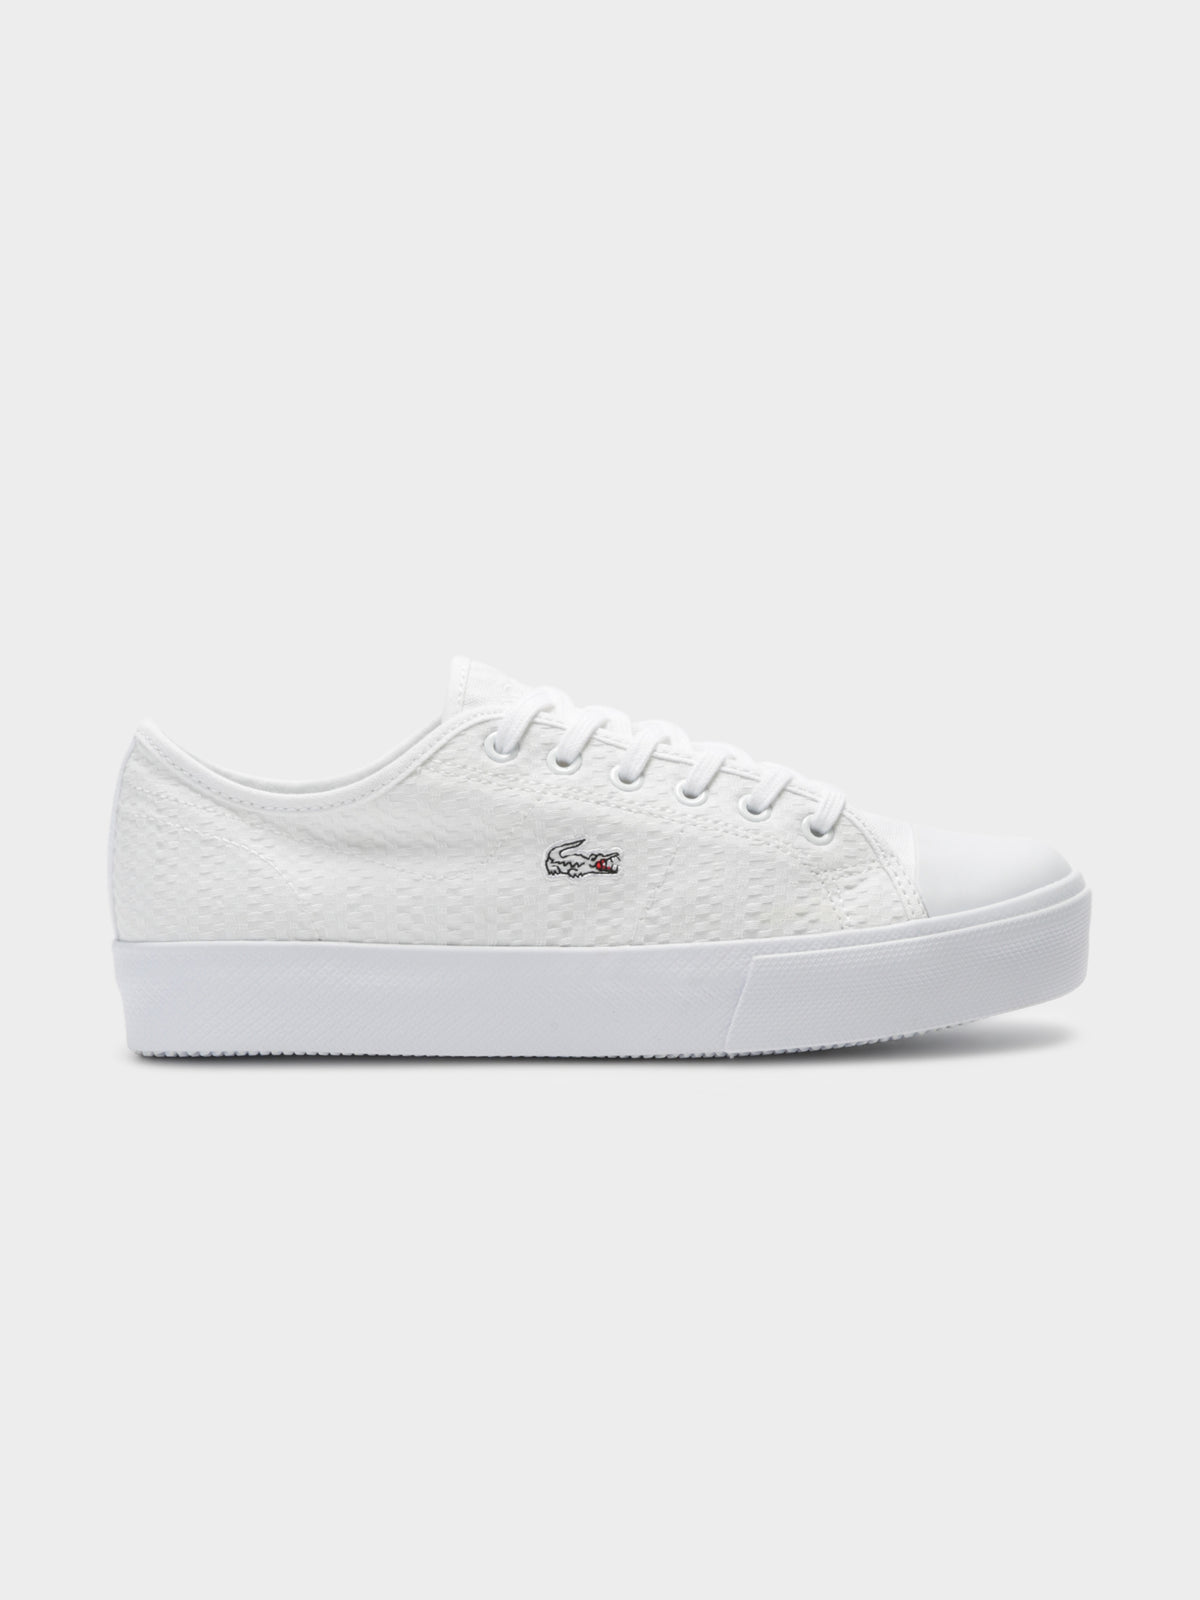 Womens Ziane Plus Grand 119 2 CFA Sneakers in White